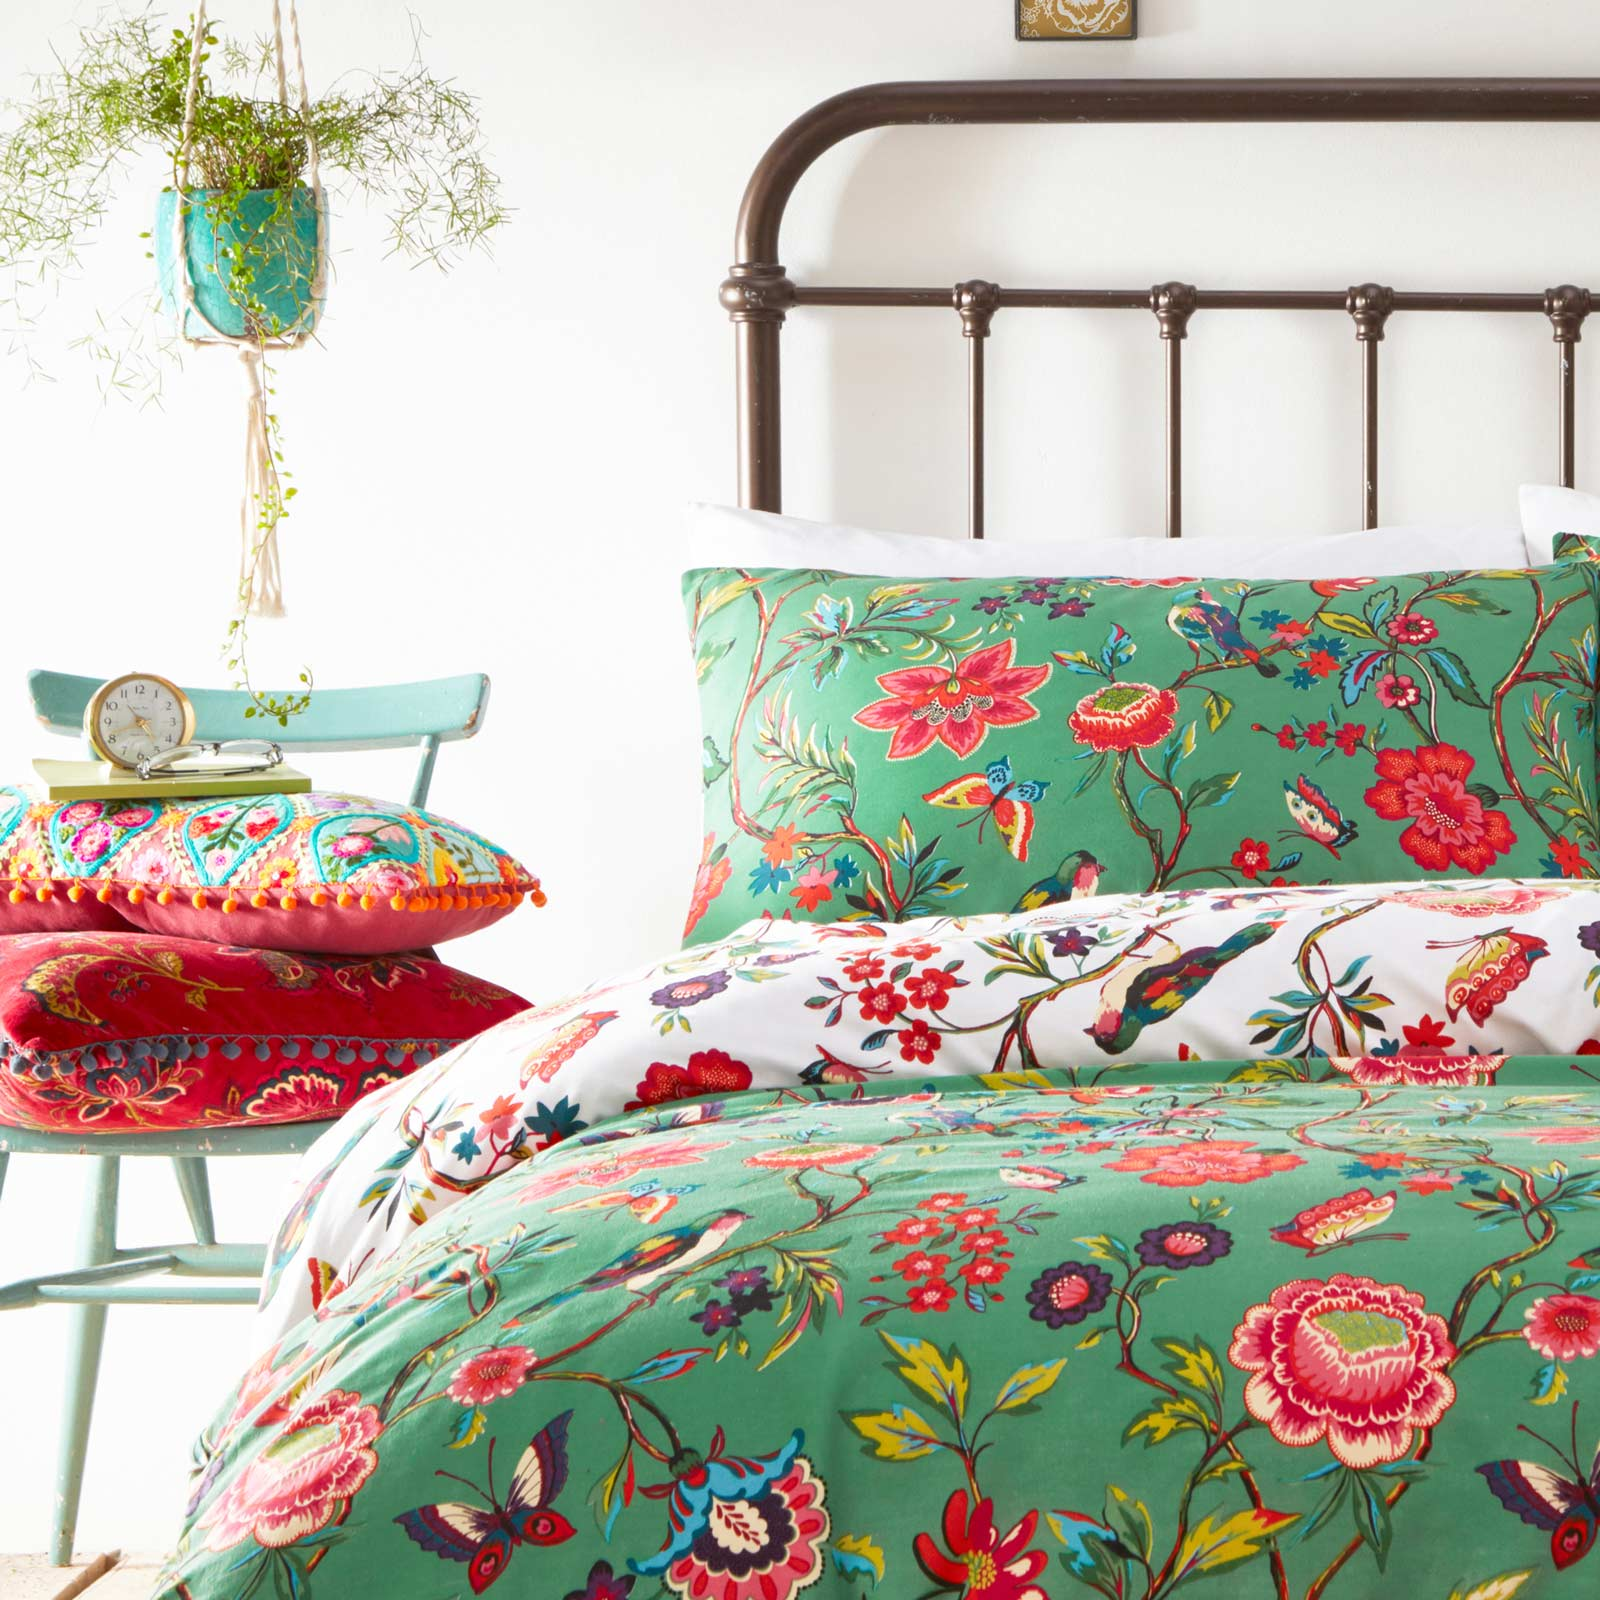 Pomelo Tropical Flowers Reversible Verdi Green Duvet Cover Set -  - Ideal Textiles